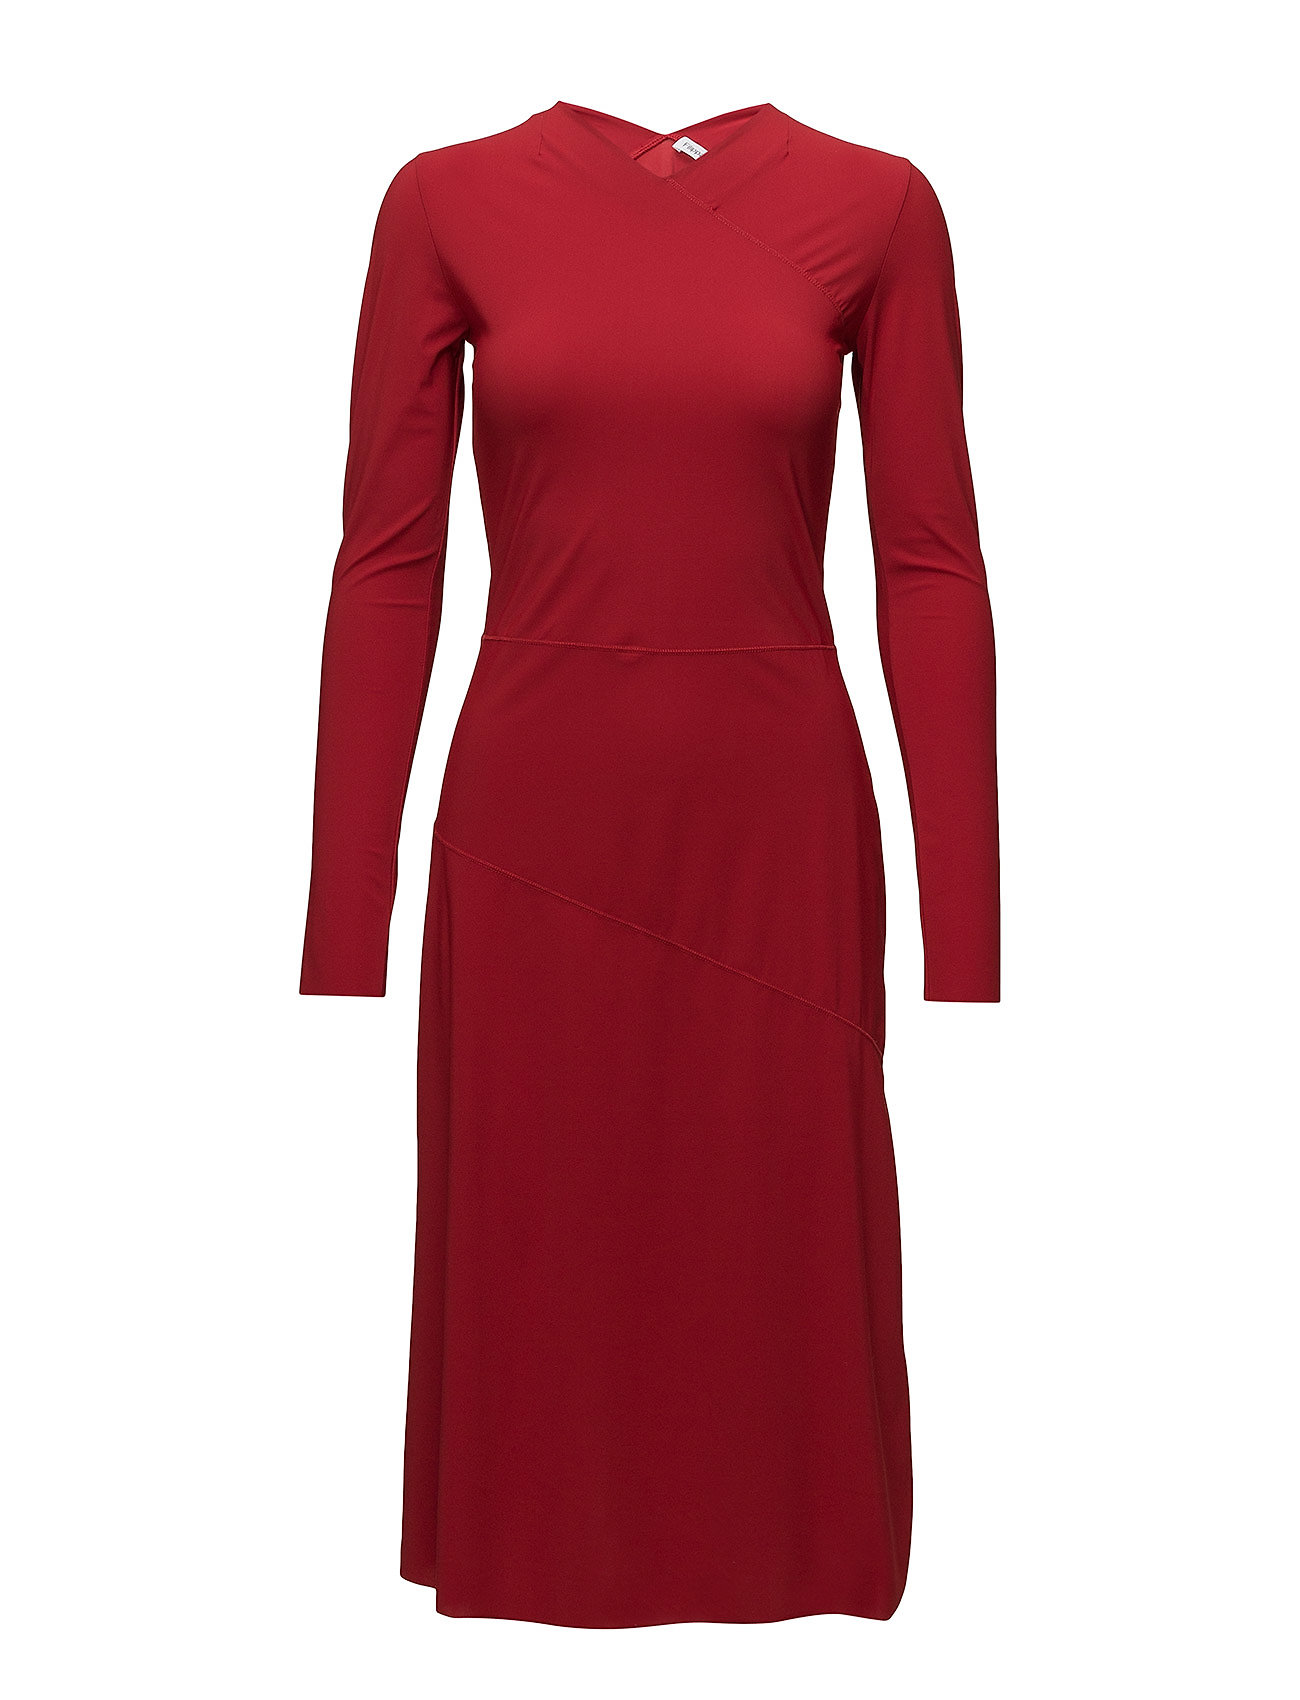 Filippa K Flared Seam Dress